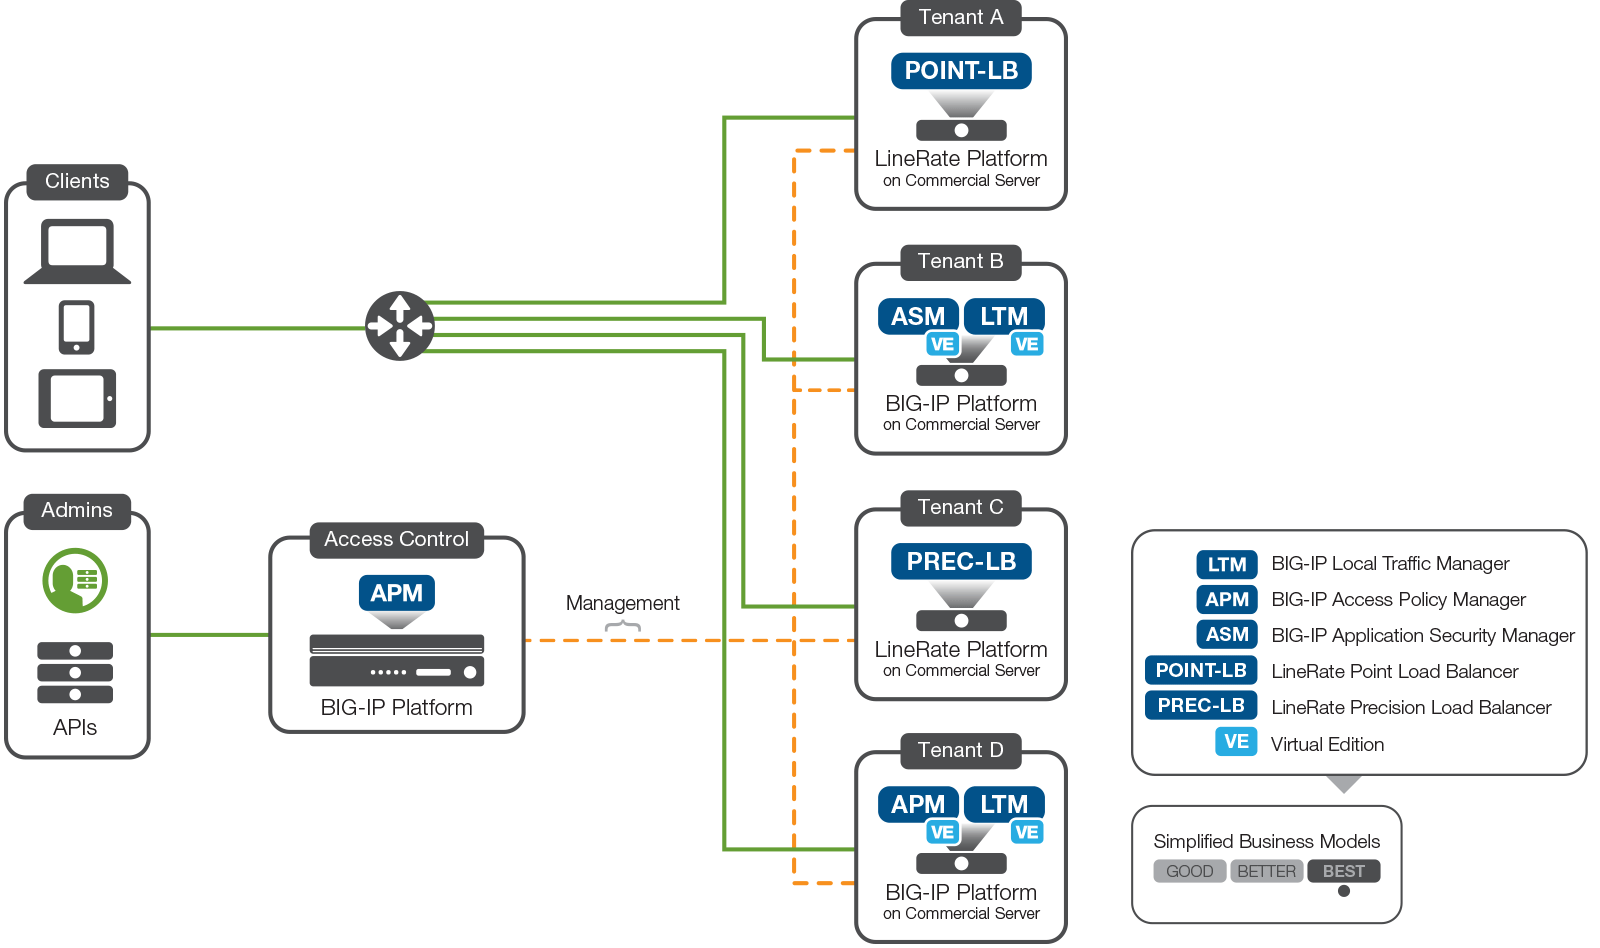 Multi-Tenancy Designs for the F5 High-Performance Services